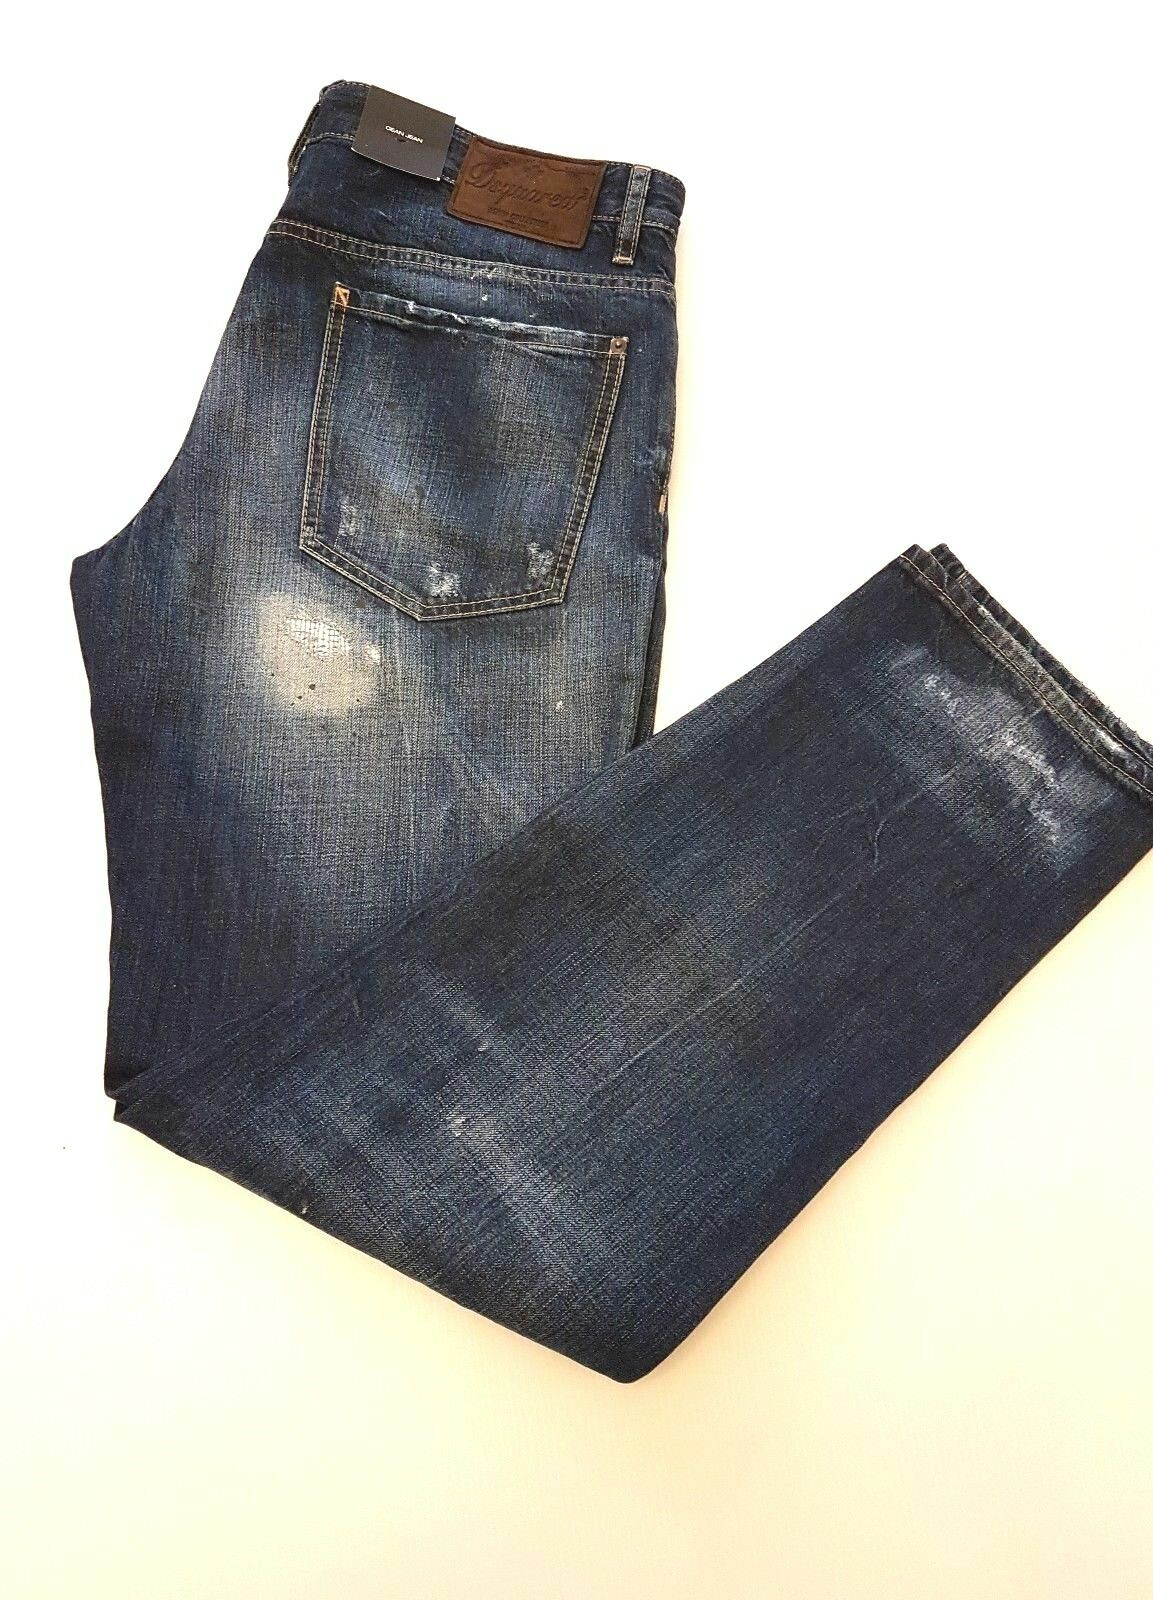 DSQUARED2 DEAN JEAN distressed and paint splash look size EU50 UK36W 32L in bluee